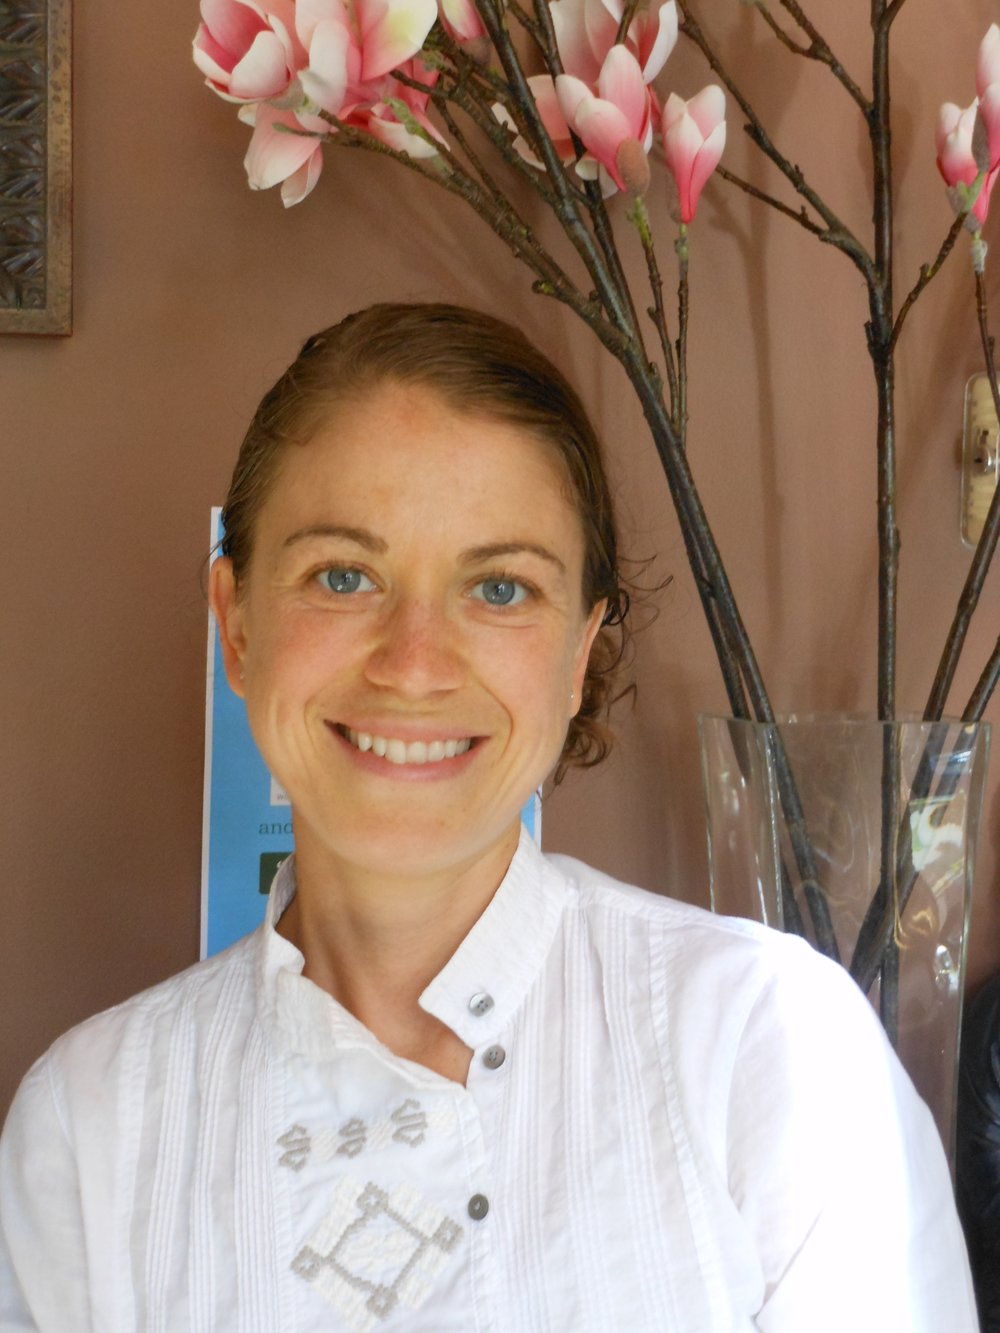 Kate Leighton   Kate Leighton has more experience as a colonic hydrotherapist than any other therapist in New England.  Her focus on nutrition, gut health and the emotions of eating have provided amazing resources to her patients.  Read more     Contact Kate